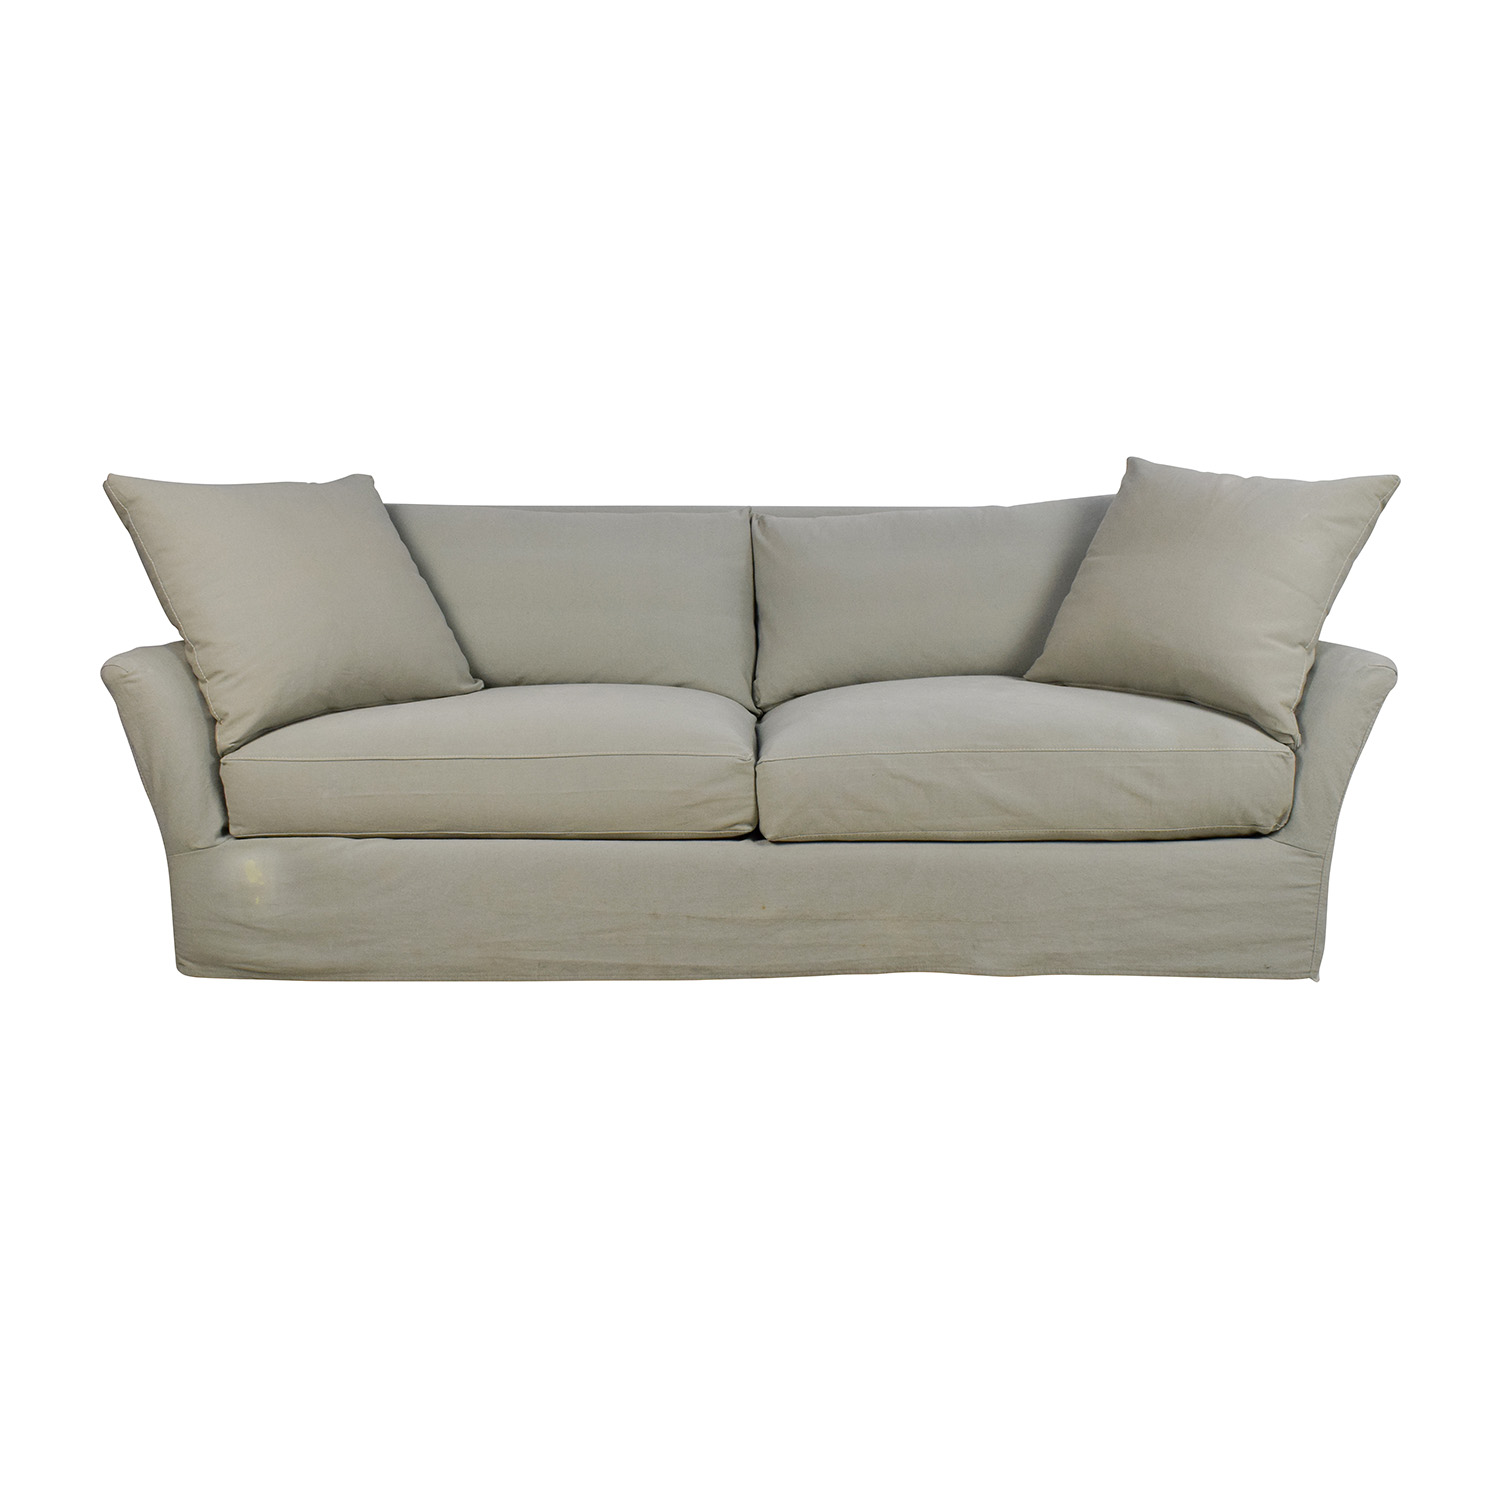 shop Crate and Barrel Crate & Barrel Willow Sage Green Sofa online